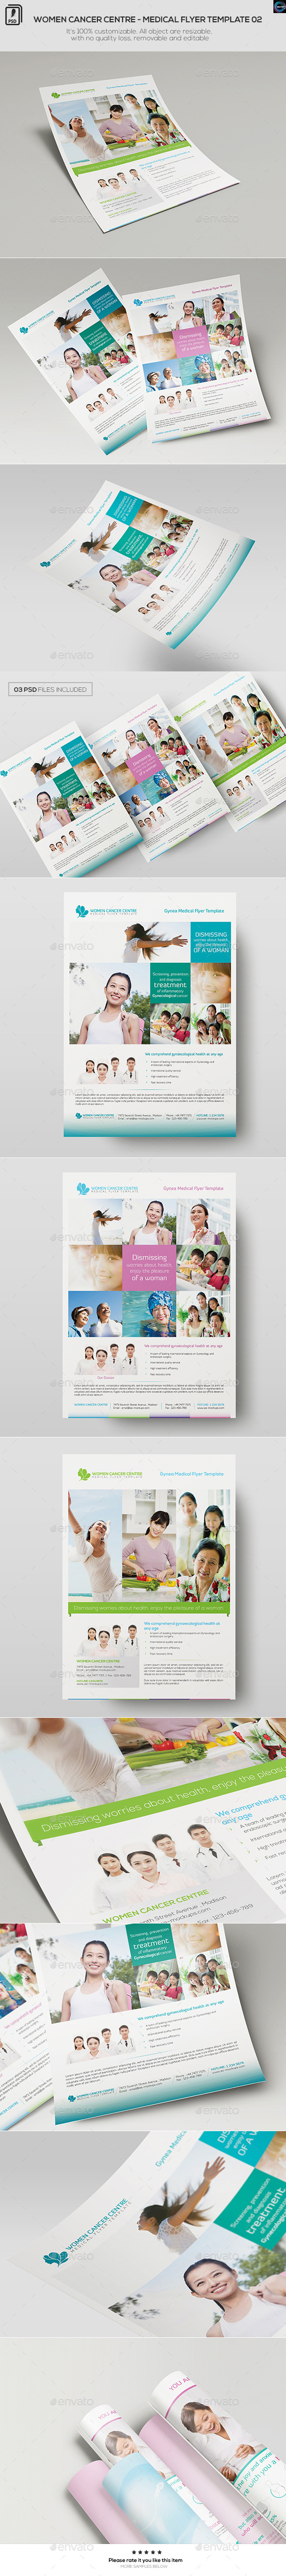 GraphicRiver Women Cancer Centre Medical Flyer Template 01 11872560